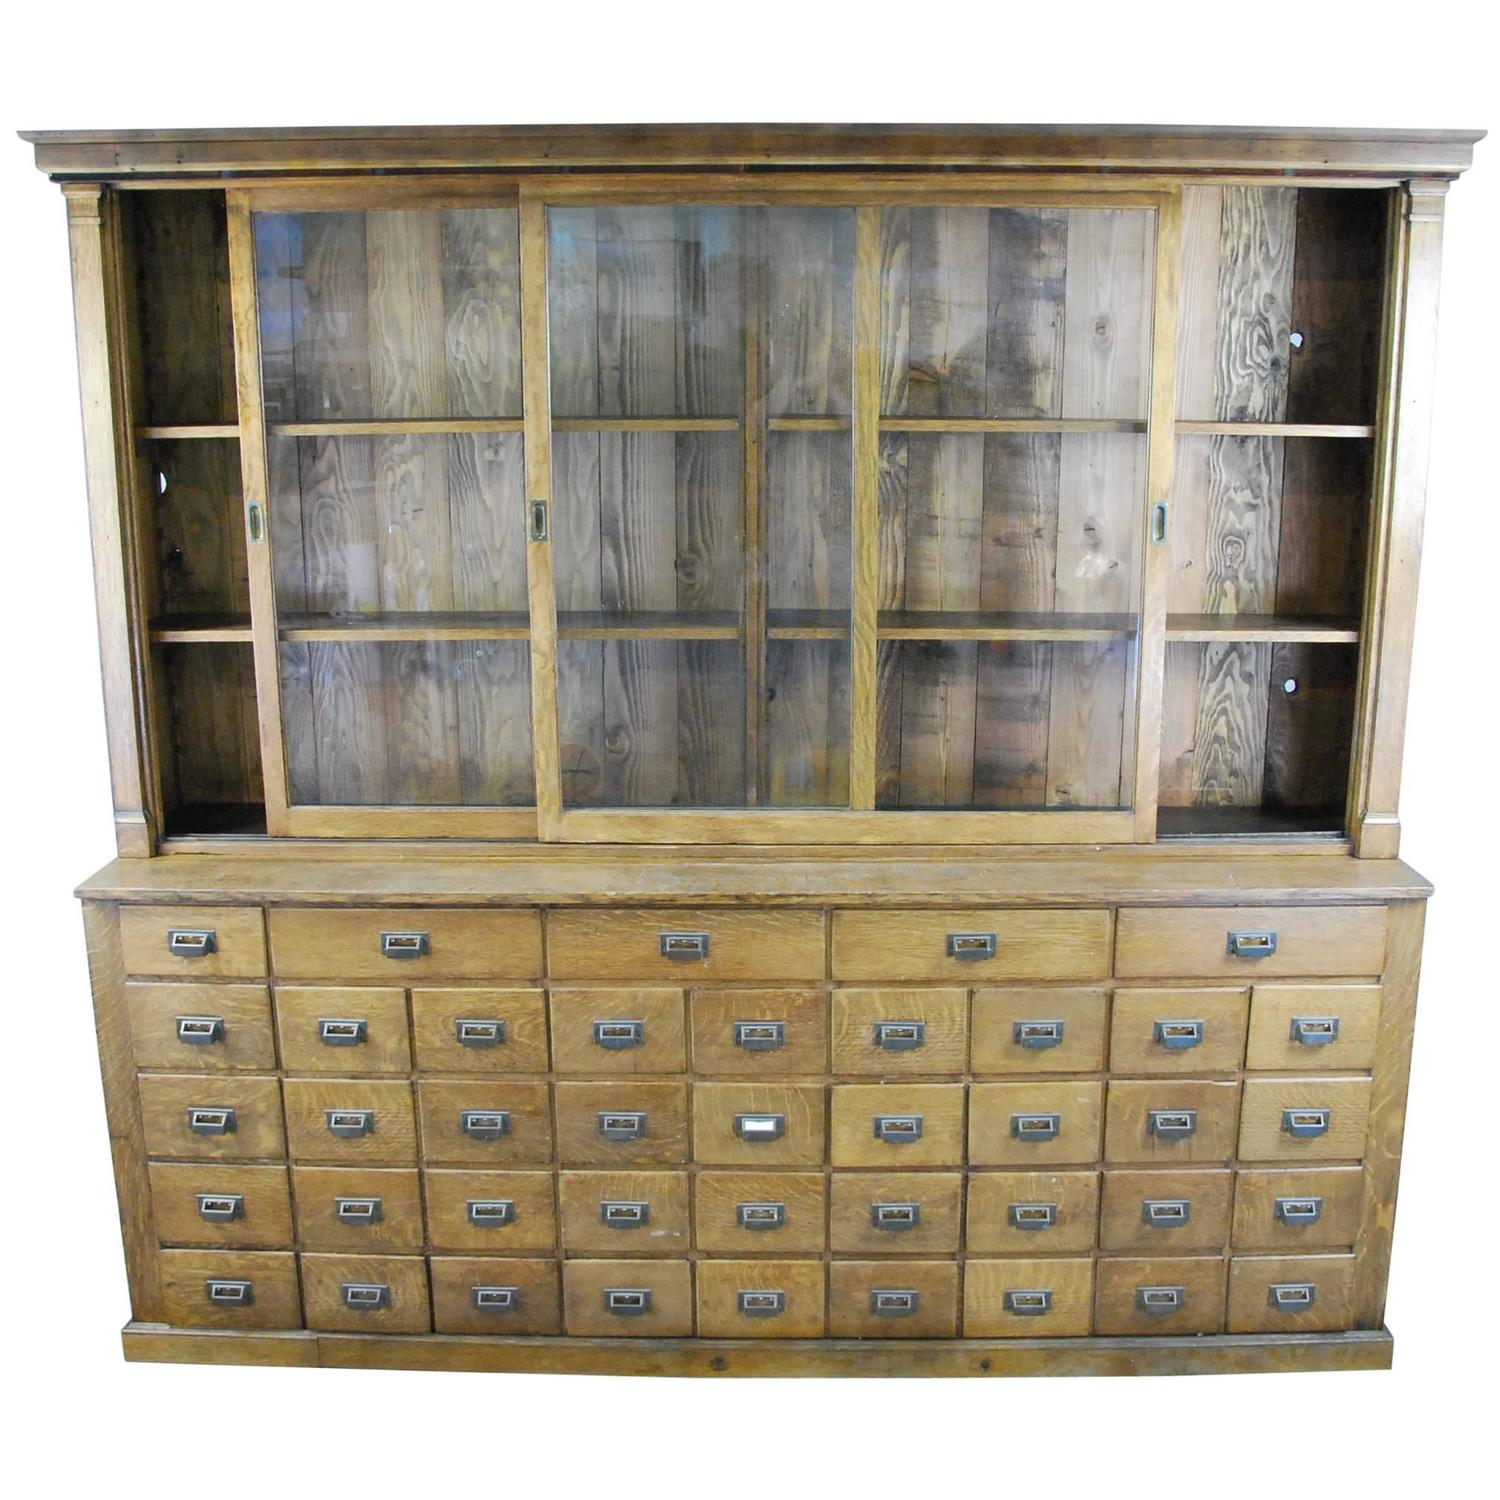 Superbe 1900 Oak Mercantile Apothecary Cabinet At 1stdibs